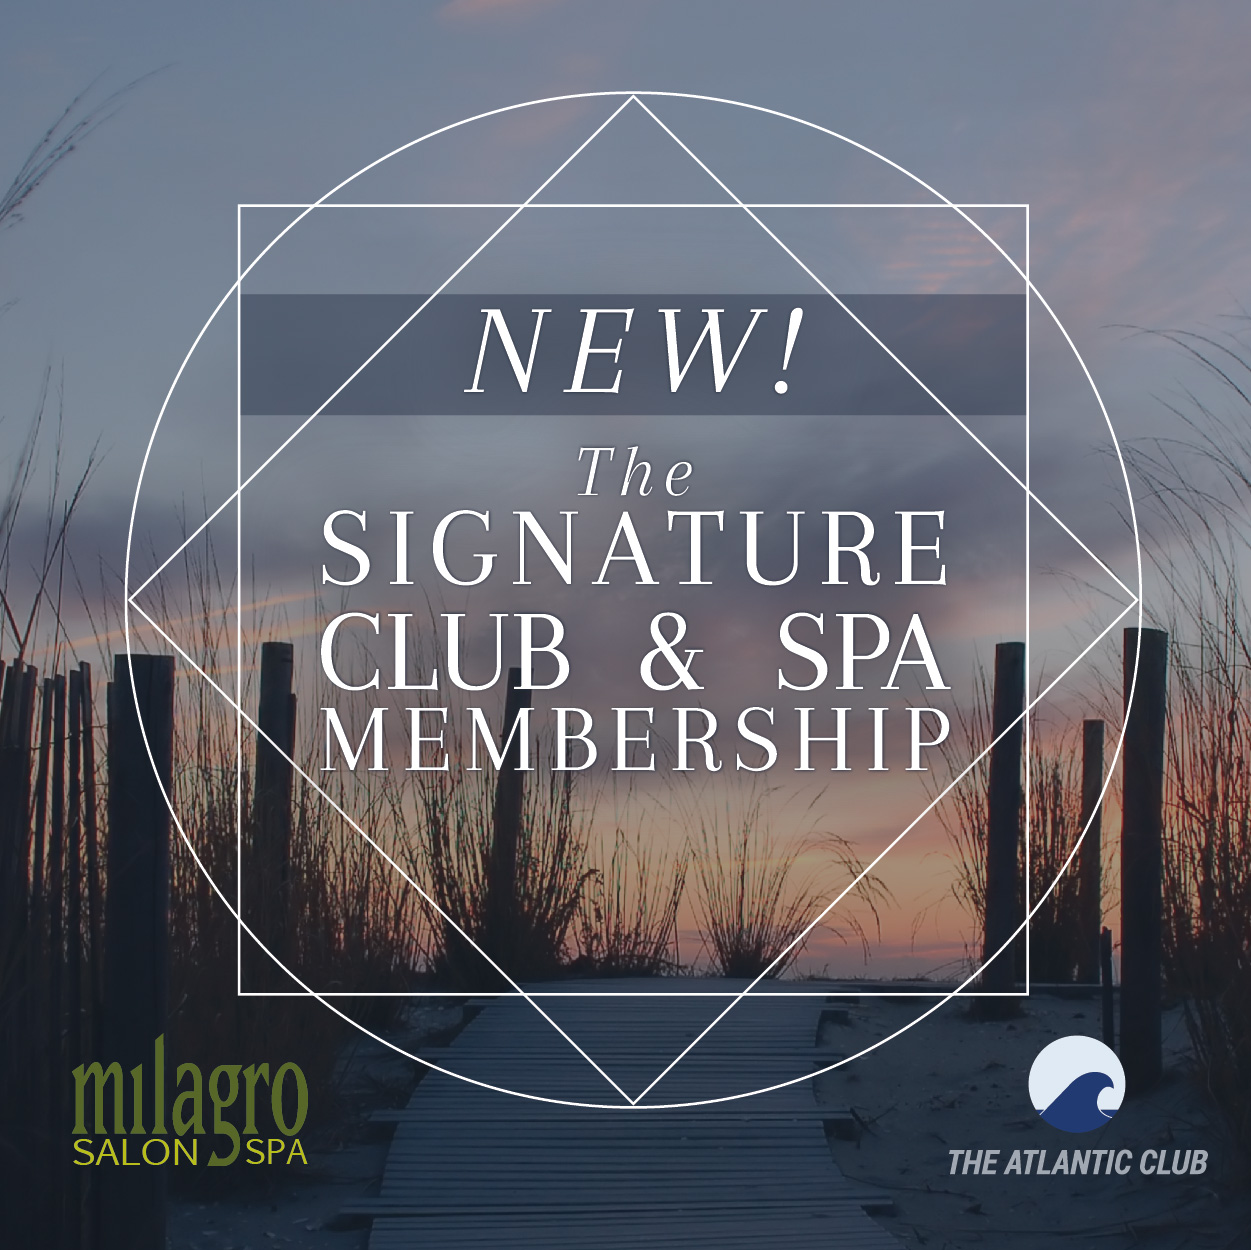 The Signature Club & Spa Membership